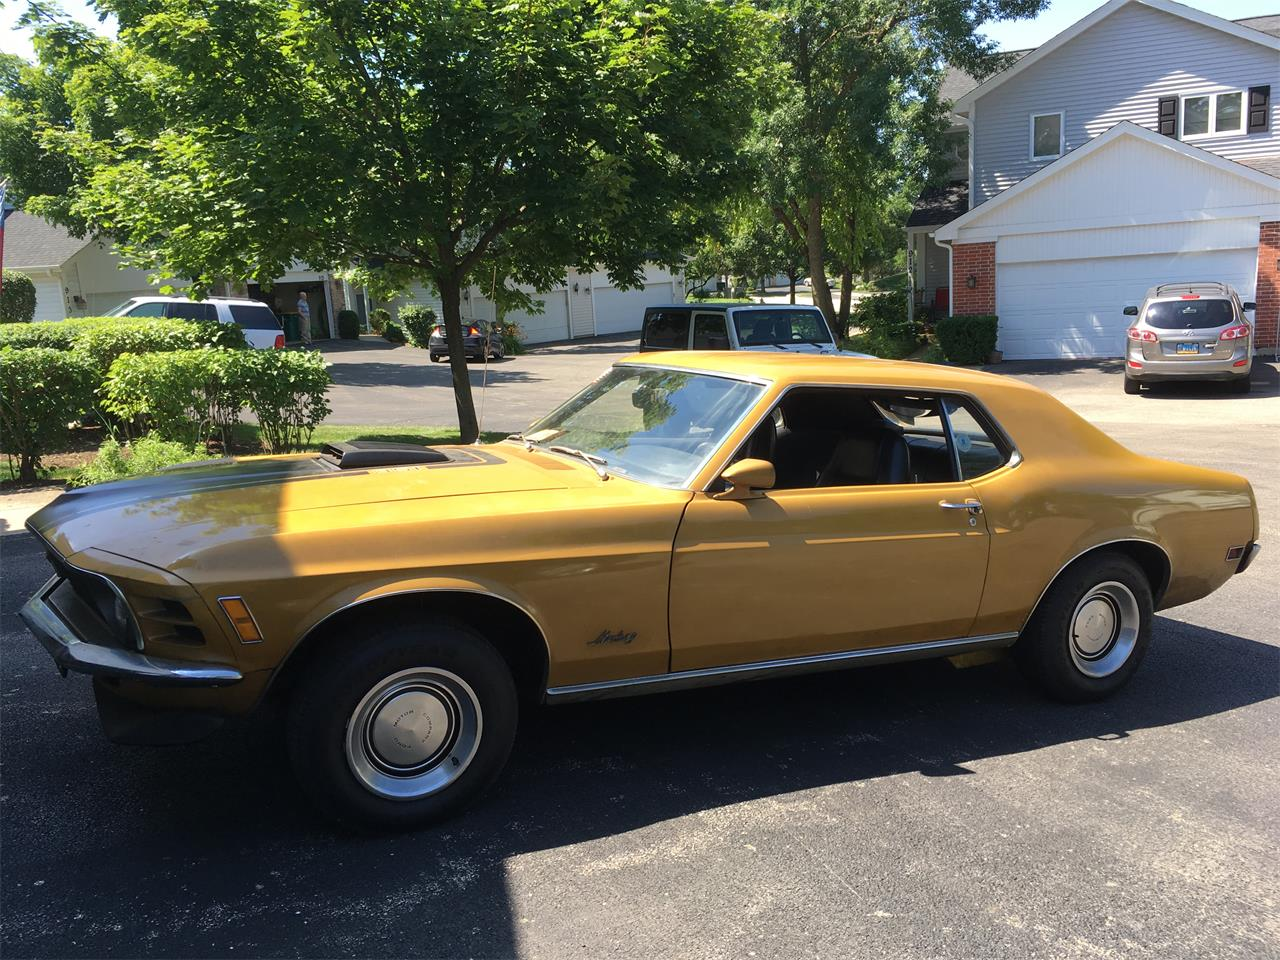 Large Picture of Classic '70 Mustang - $20,000.00 Offered by a Private Seller - QI0M